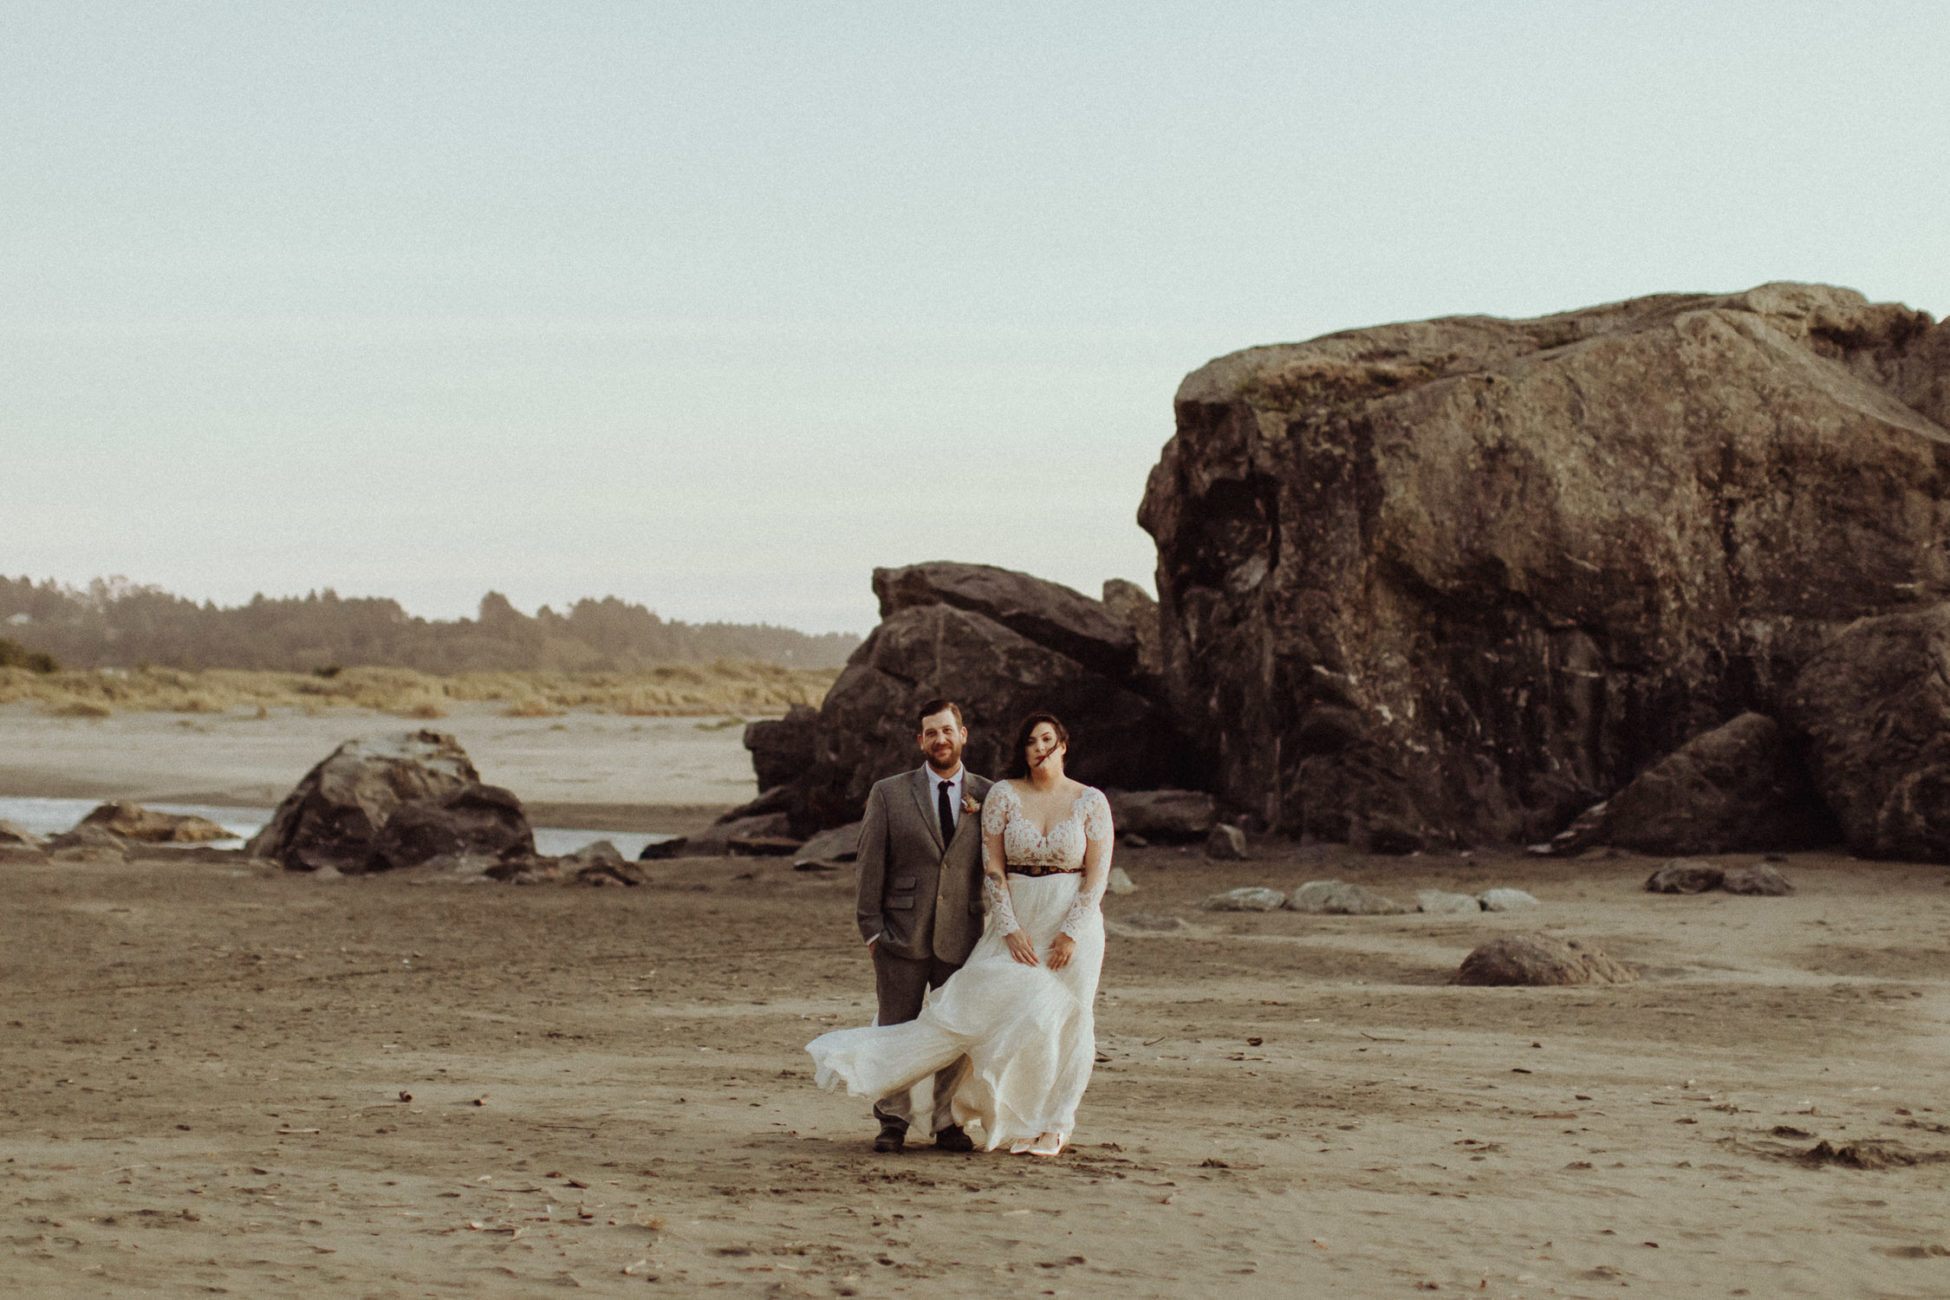 Patrick's Point wedding near Trinidad, California